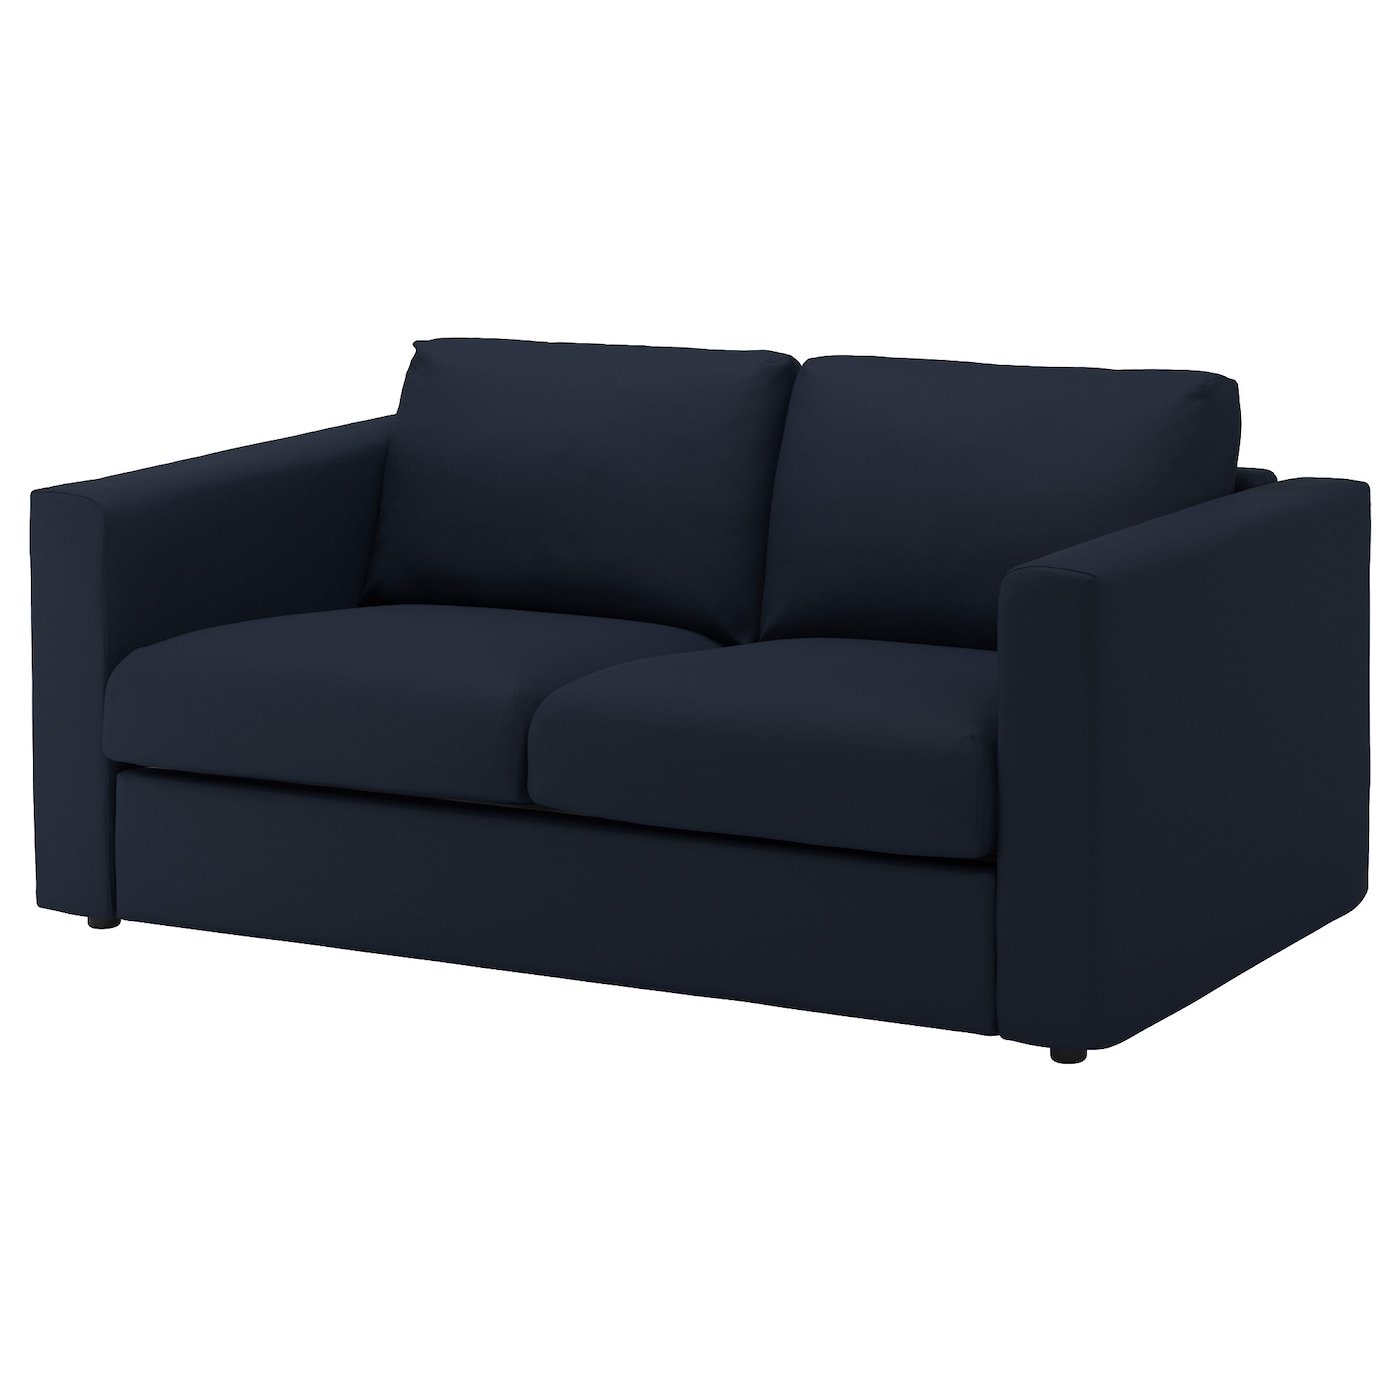 vimle 2 seat sofa gr sbo black blue ikea. Black Bedroom Furniture Sets. Home Design Ideas